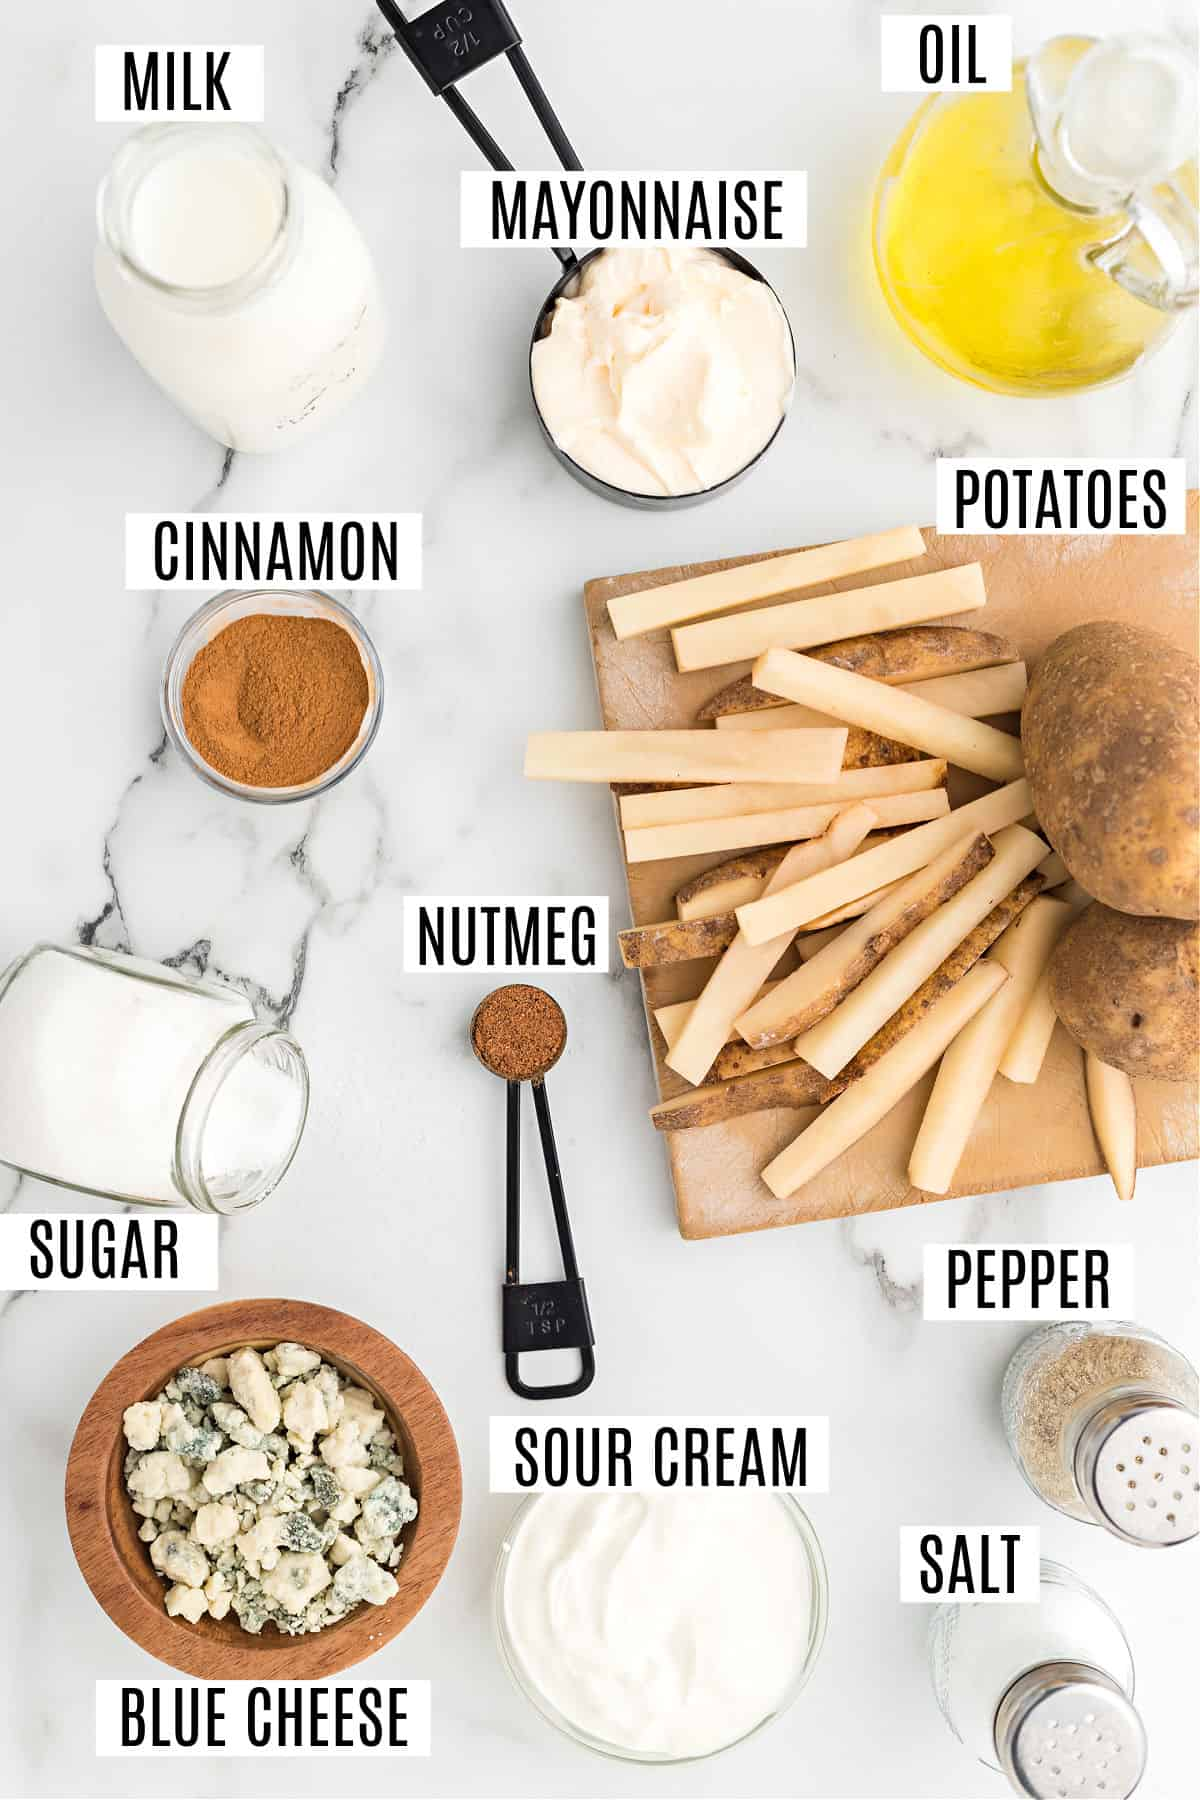 Ingredients needed for baked french fries with homemade bleu cheese dressing.